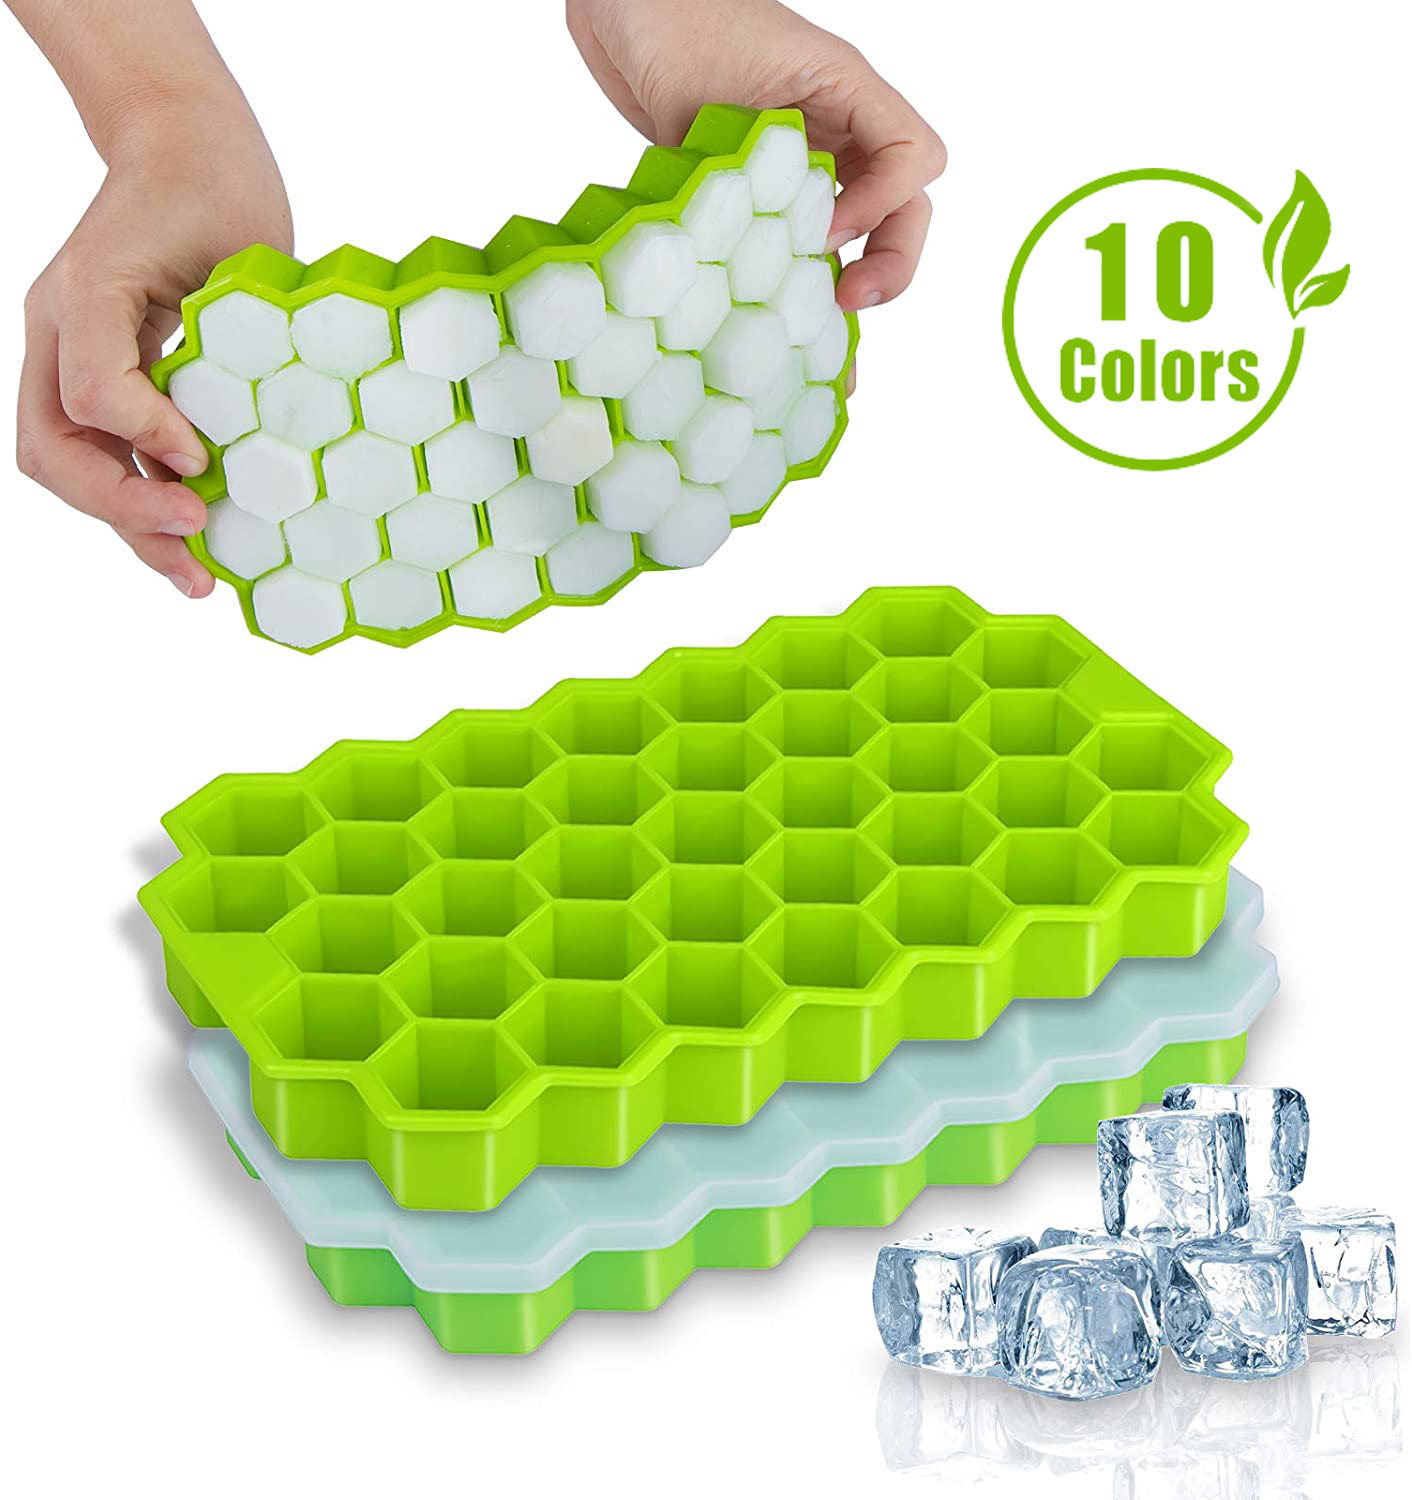 SILIKOLOVE Honeycomb Ice Cube Trays Reusable Silicone Ice cube Mold BPA Free Ice maker with Removable Lids